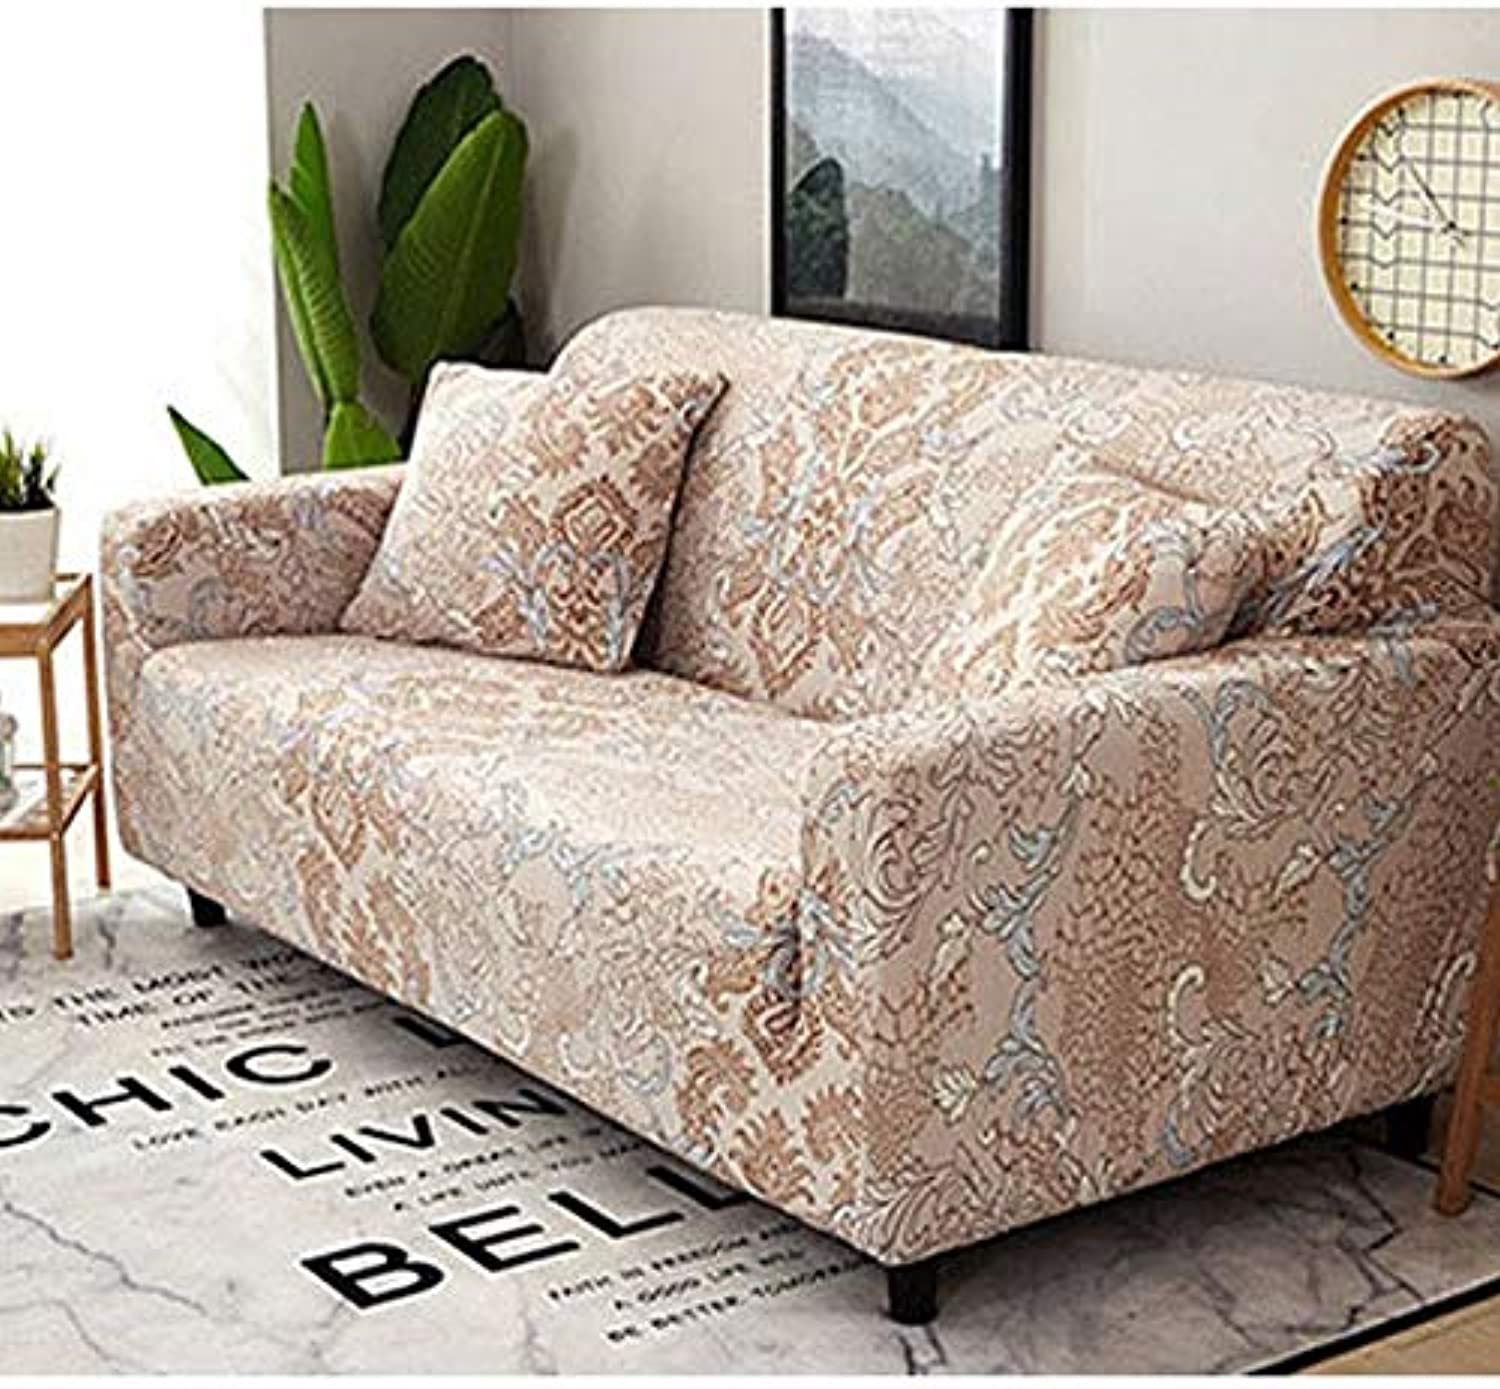 Farmerly Elastic Combination Sofa Cover Printed Flowers Full Package Wrap Corner Sofa Cover Stretch Furniture Covers 1 2 3 4 Seater   Northern Europe, 90-140cm